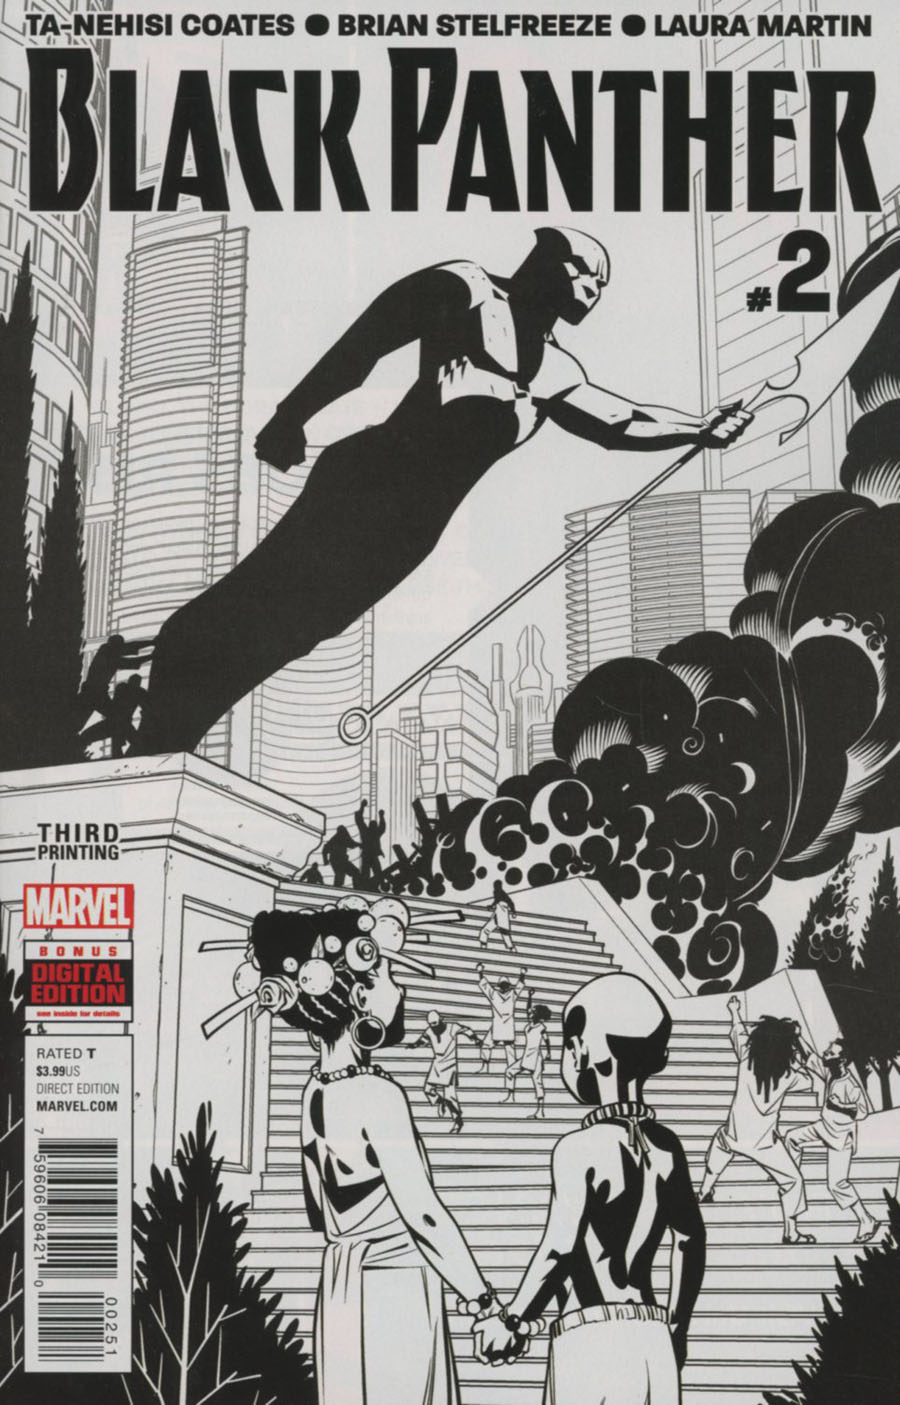 Black Panther Vol 6 #2 Cover F 3rd Ptg Brian Stelfreeze Black & White Variant Cover